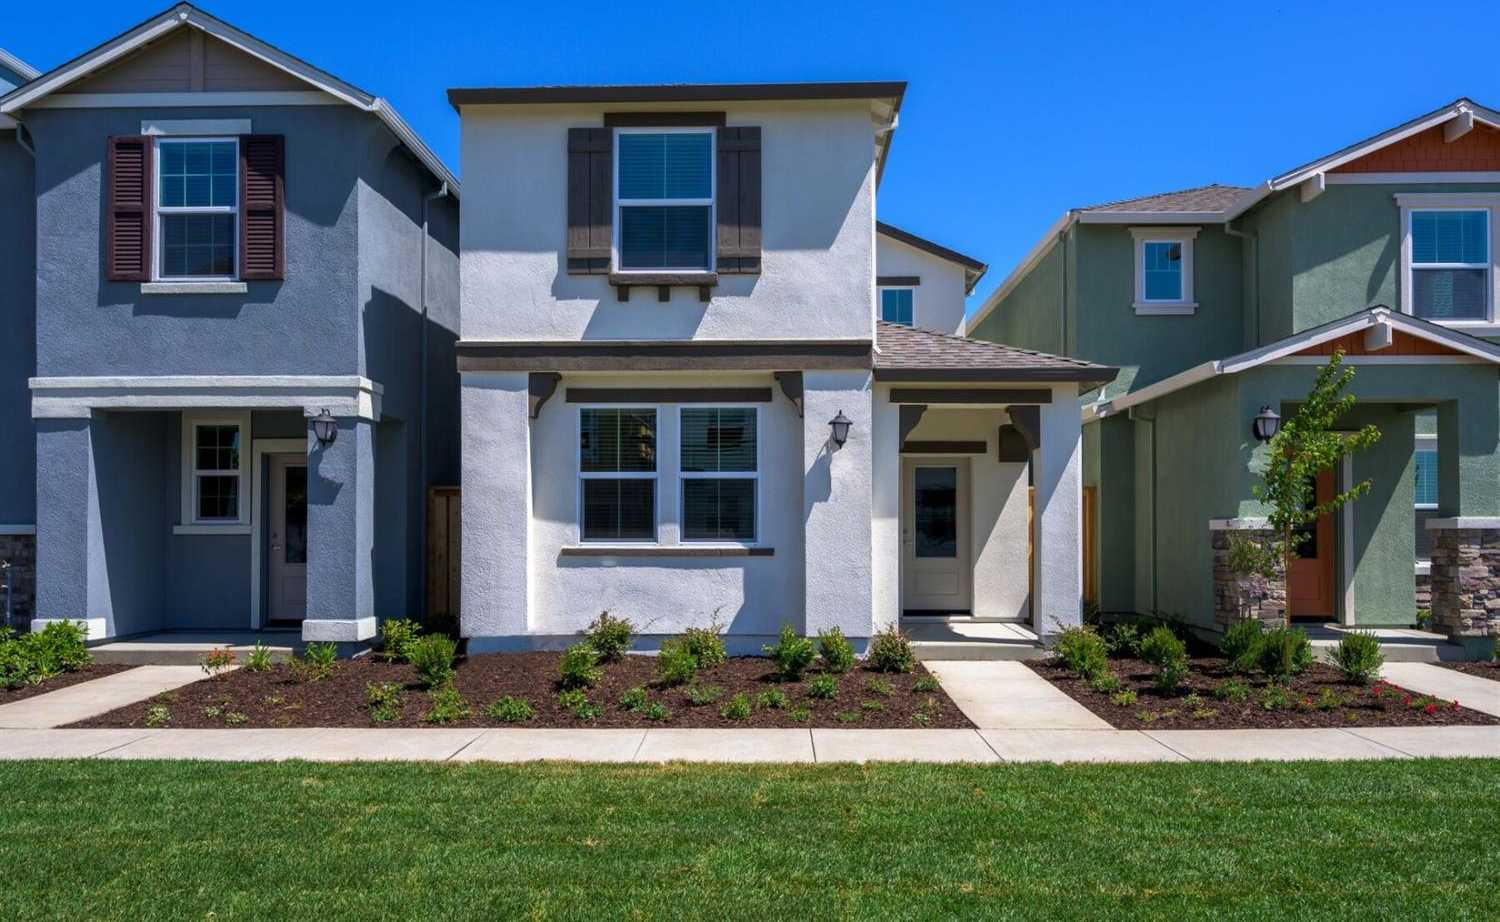 $394,900 - 3Br/3Ba -  for Sale in Port Towne At Bridgeway Lakes, West Sacramento